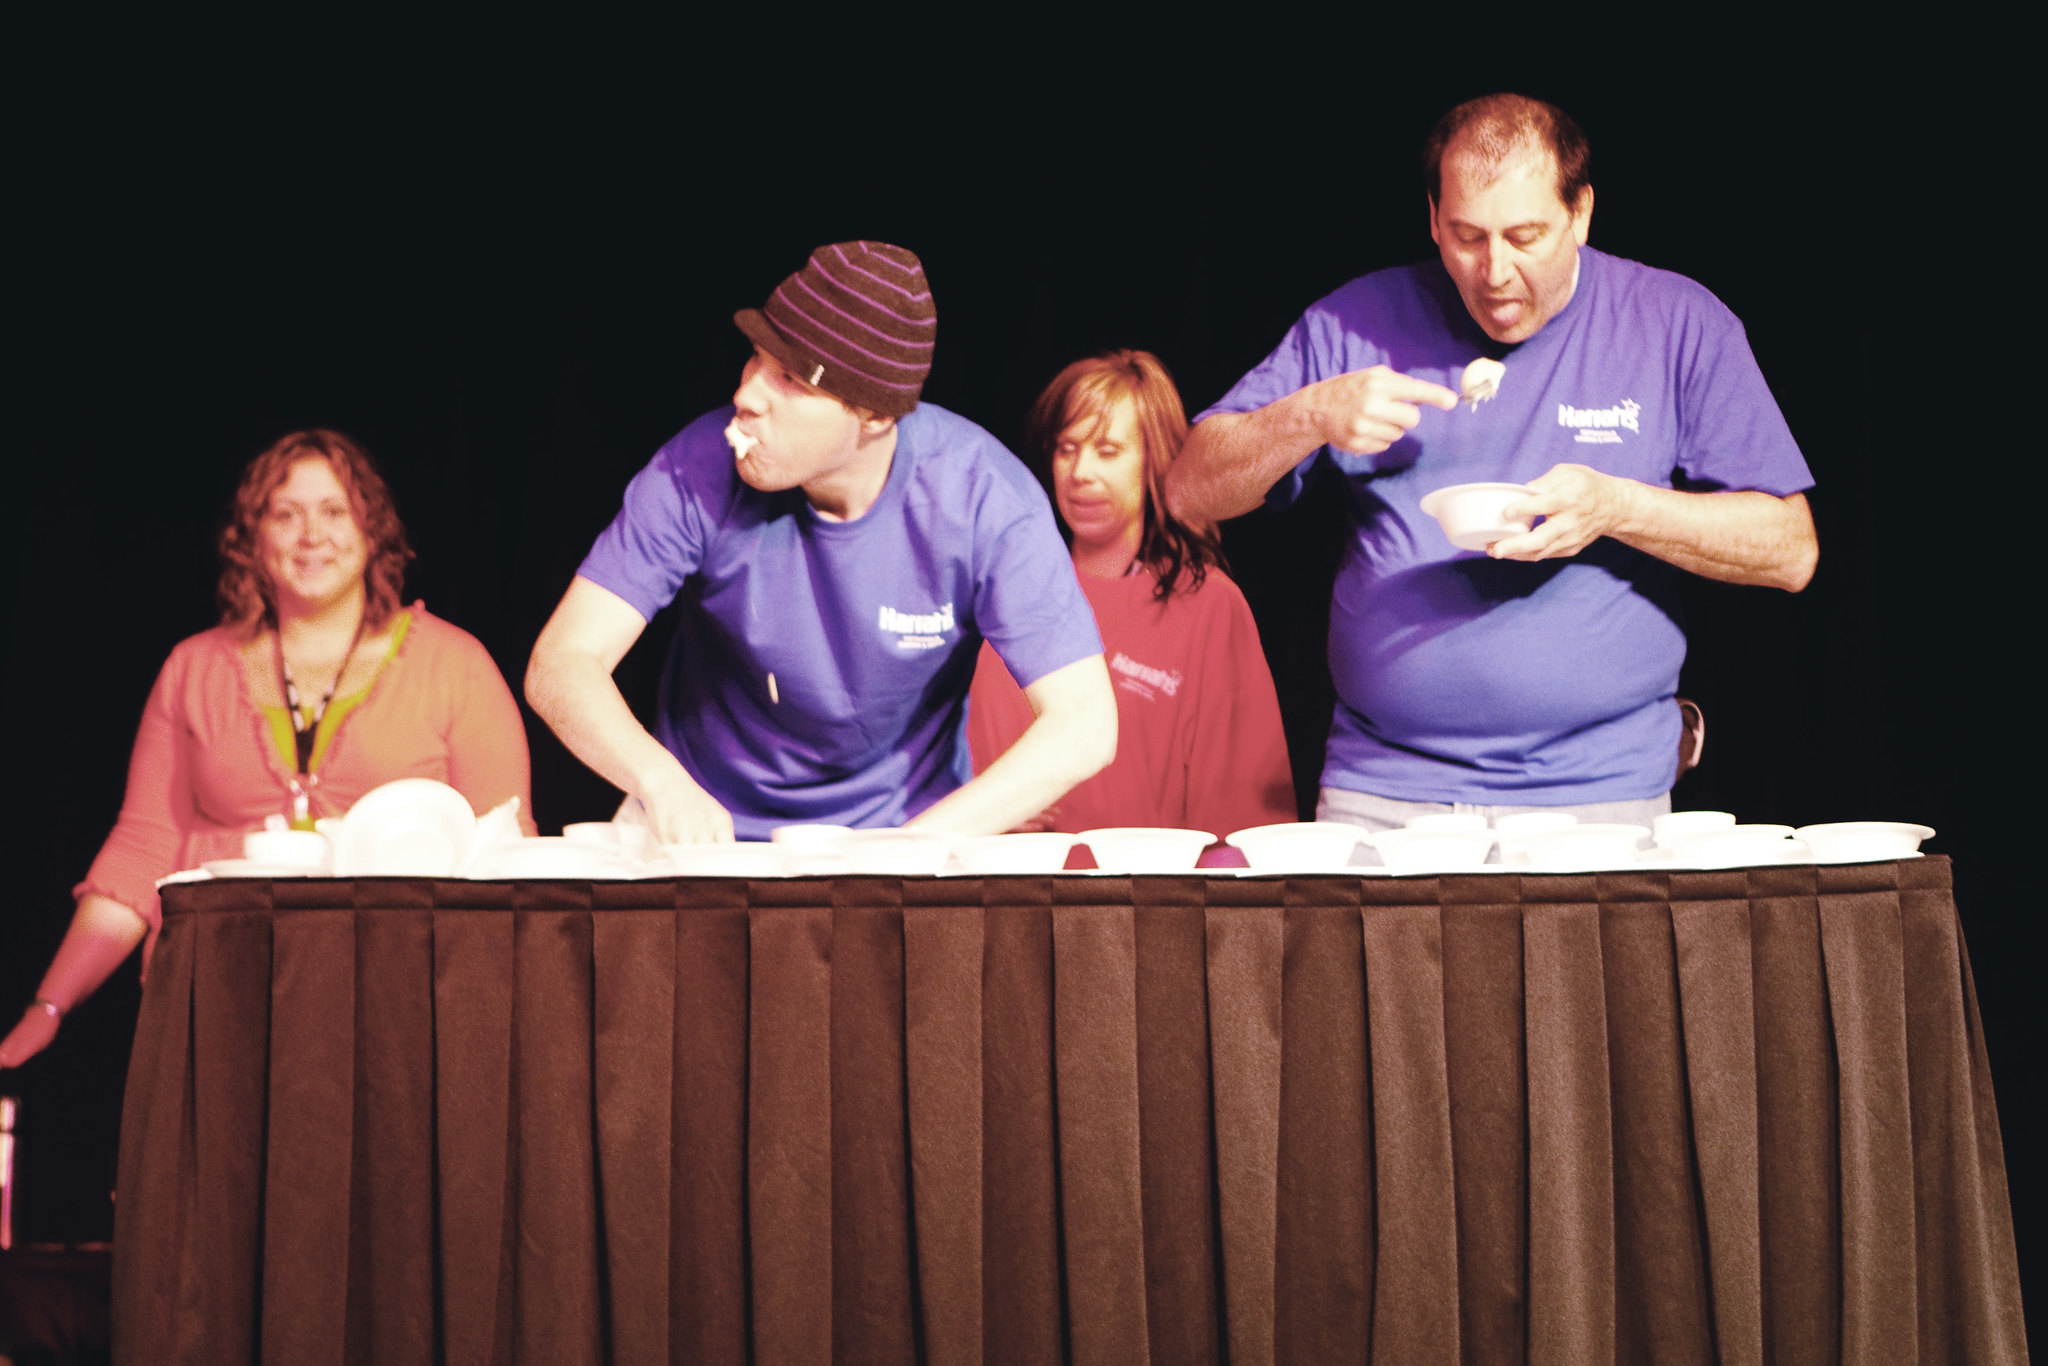 Nate Biller eats at the Ice Cream Eating Contest at Harrah's Casino in Metropolis, Illinois.